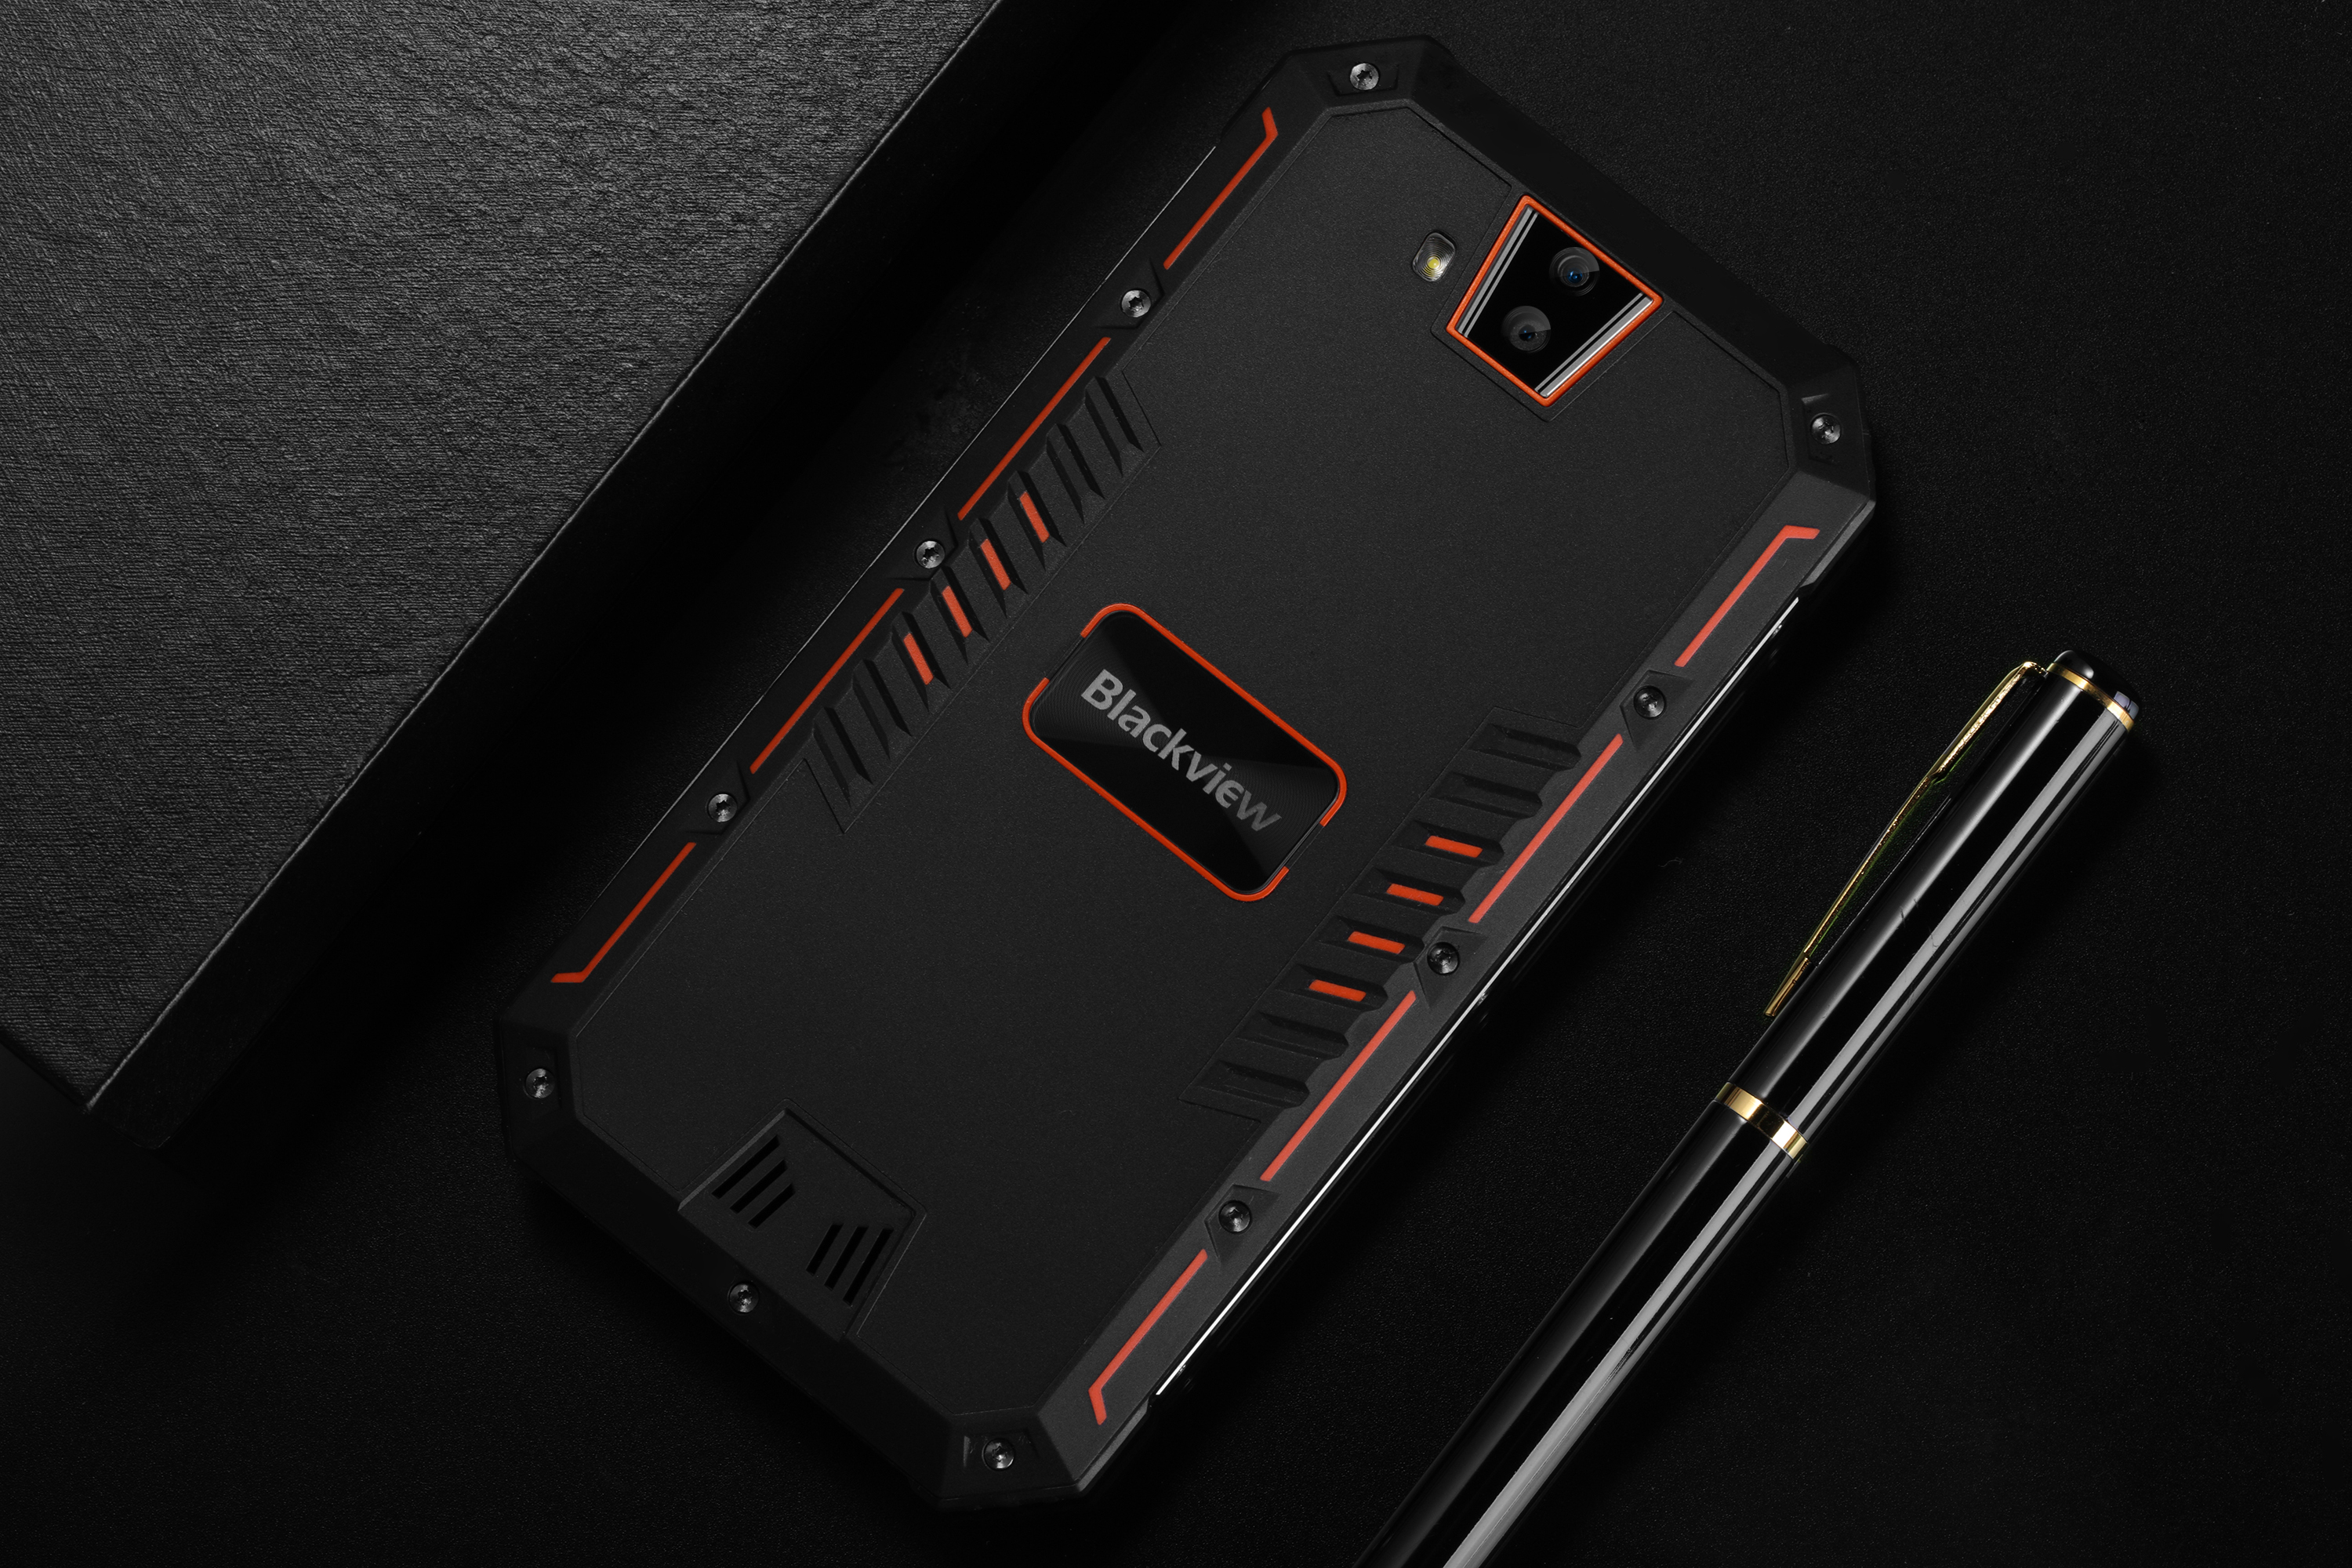 Blackview BV4000, A Rugged Smartphone With An Amazing Design Leaks